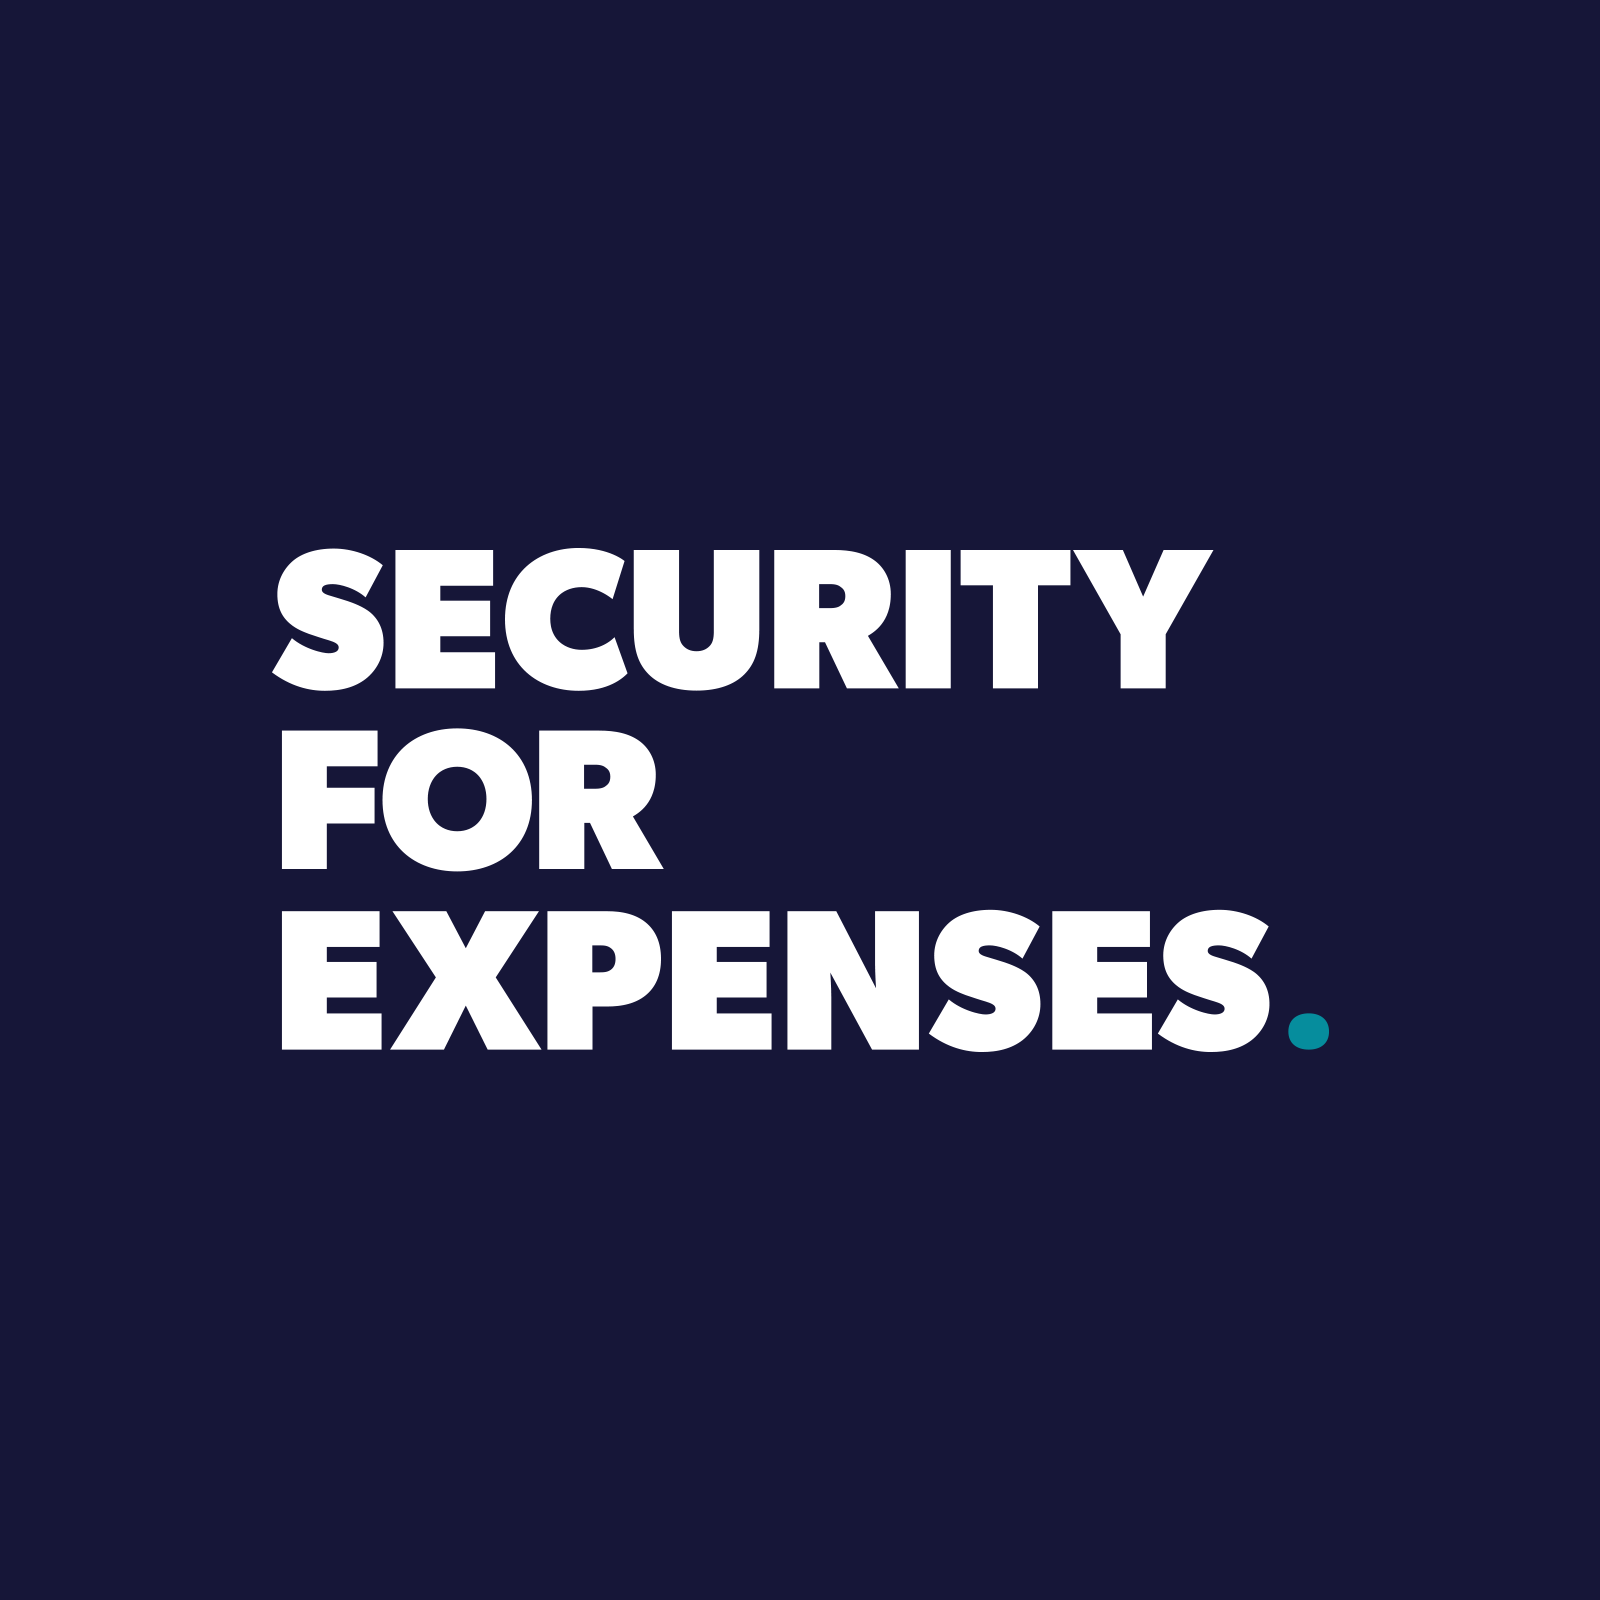 security for expenses ltd